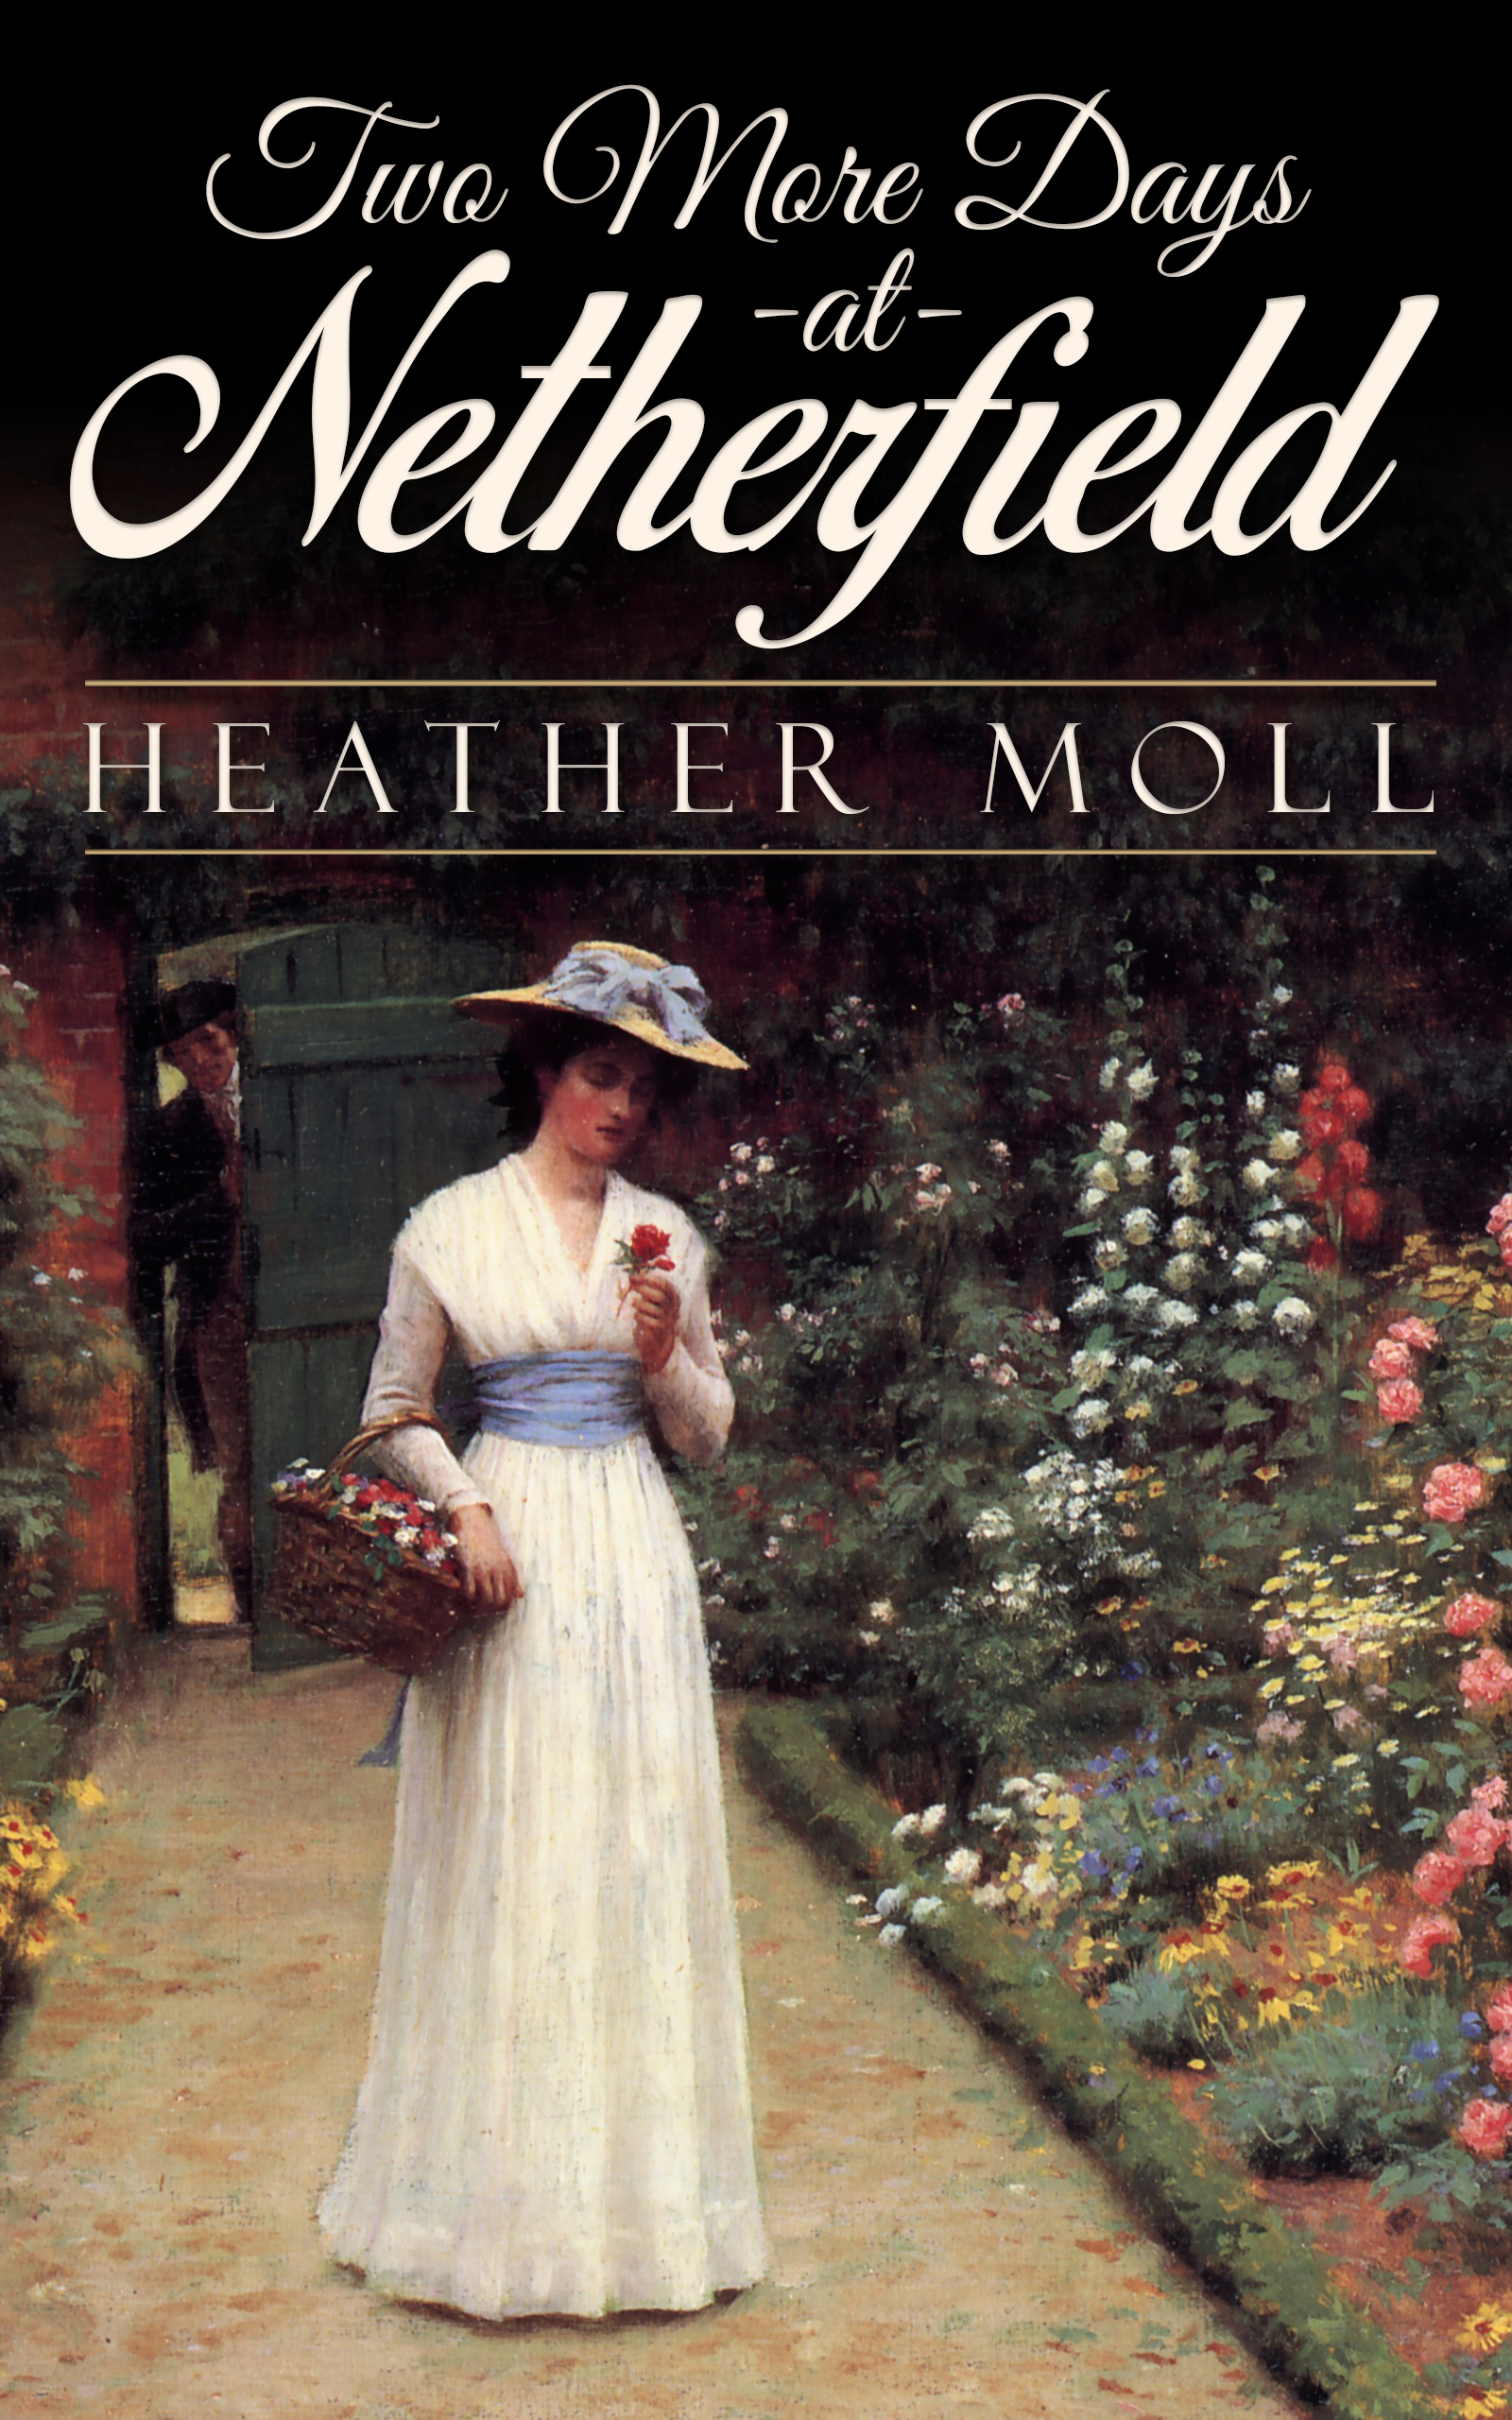 Two More Days at Netherfield, by Heather Moll (2020)